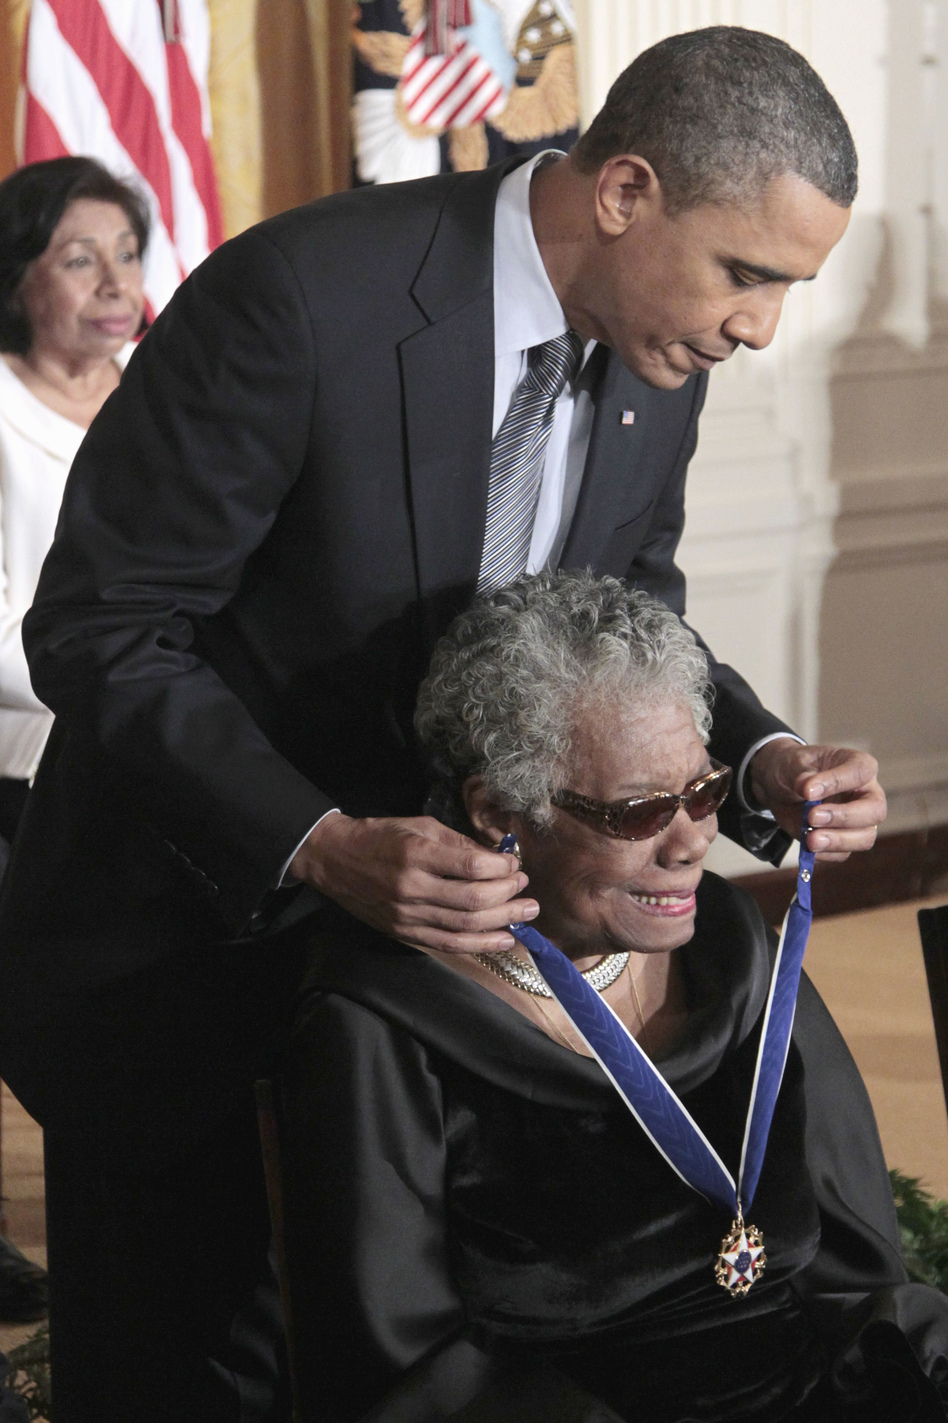 President Obama presents a Medal of Freedom to Angelou during a ceremony at the White House on Feb. 15, 2011. (AP)